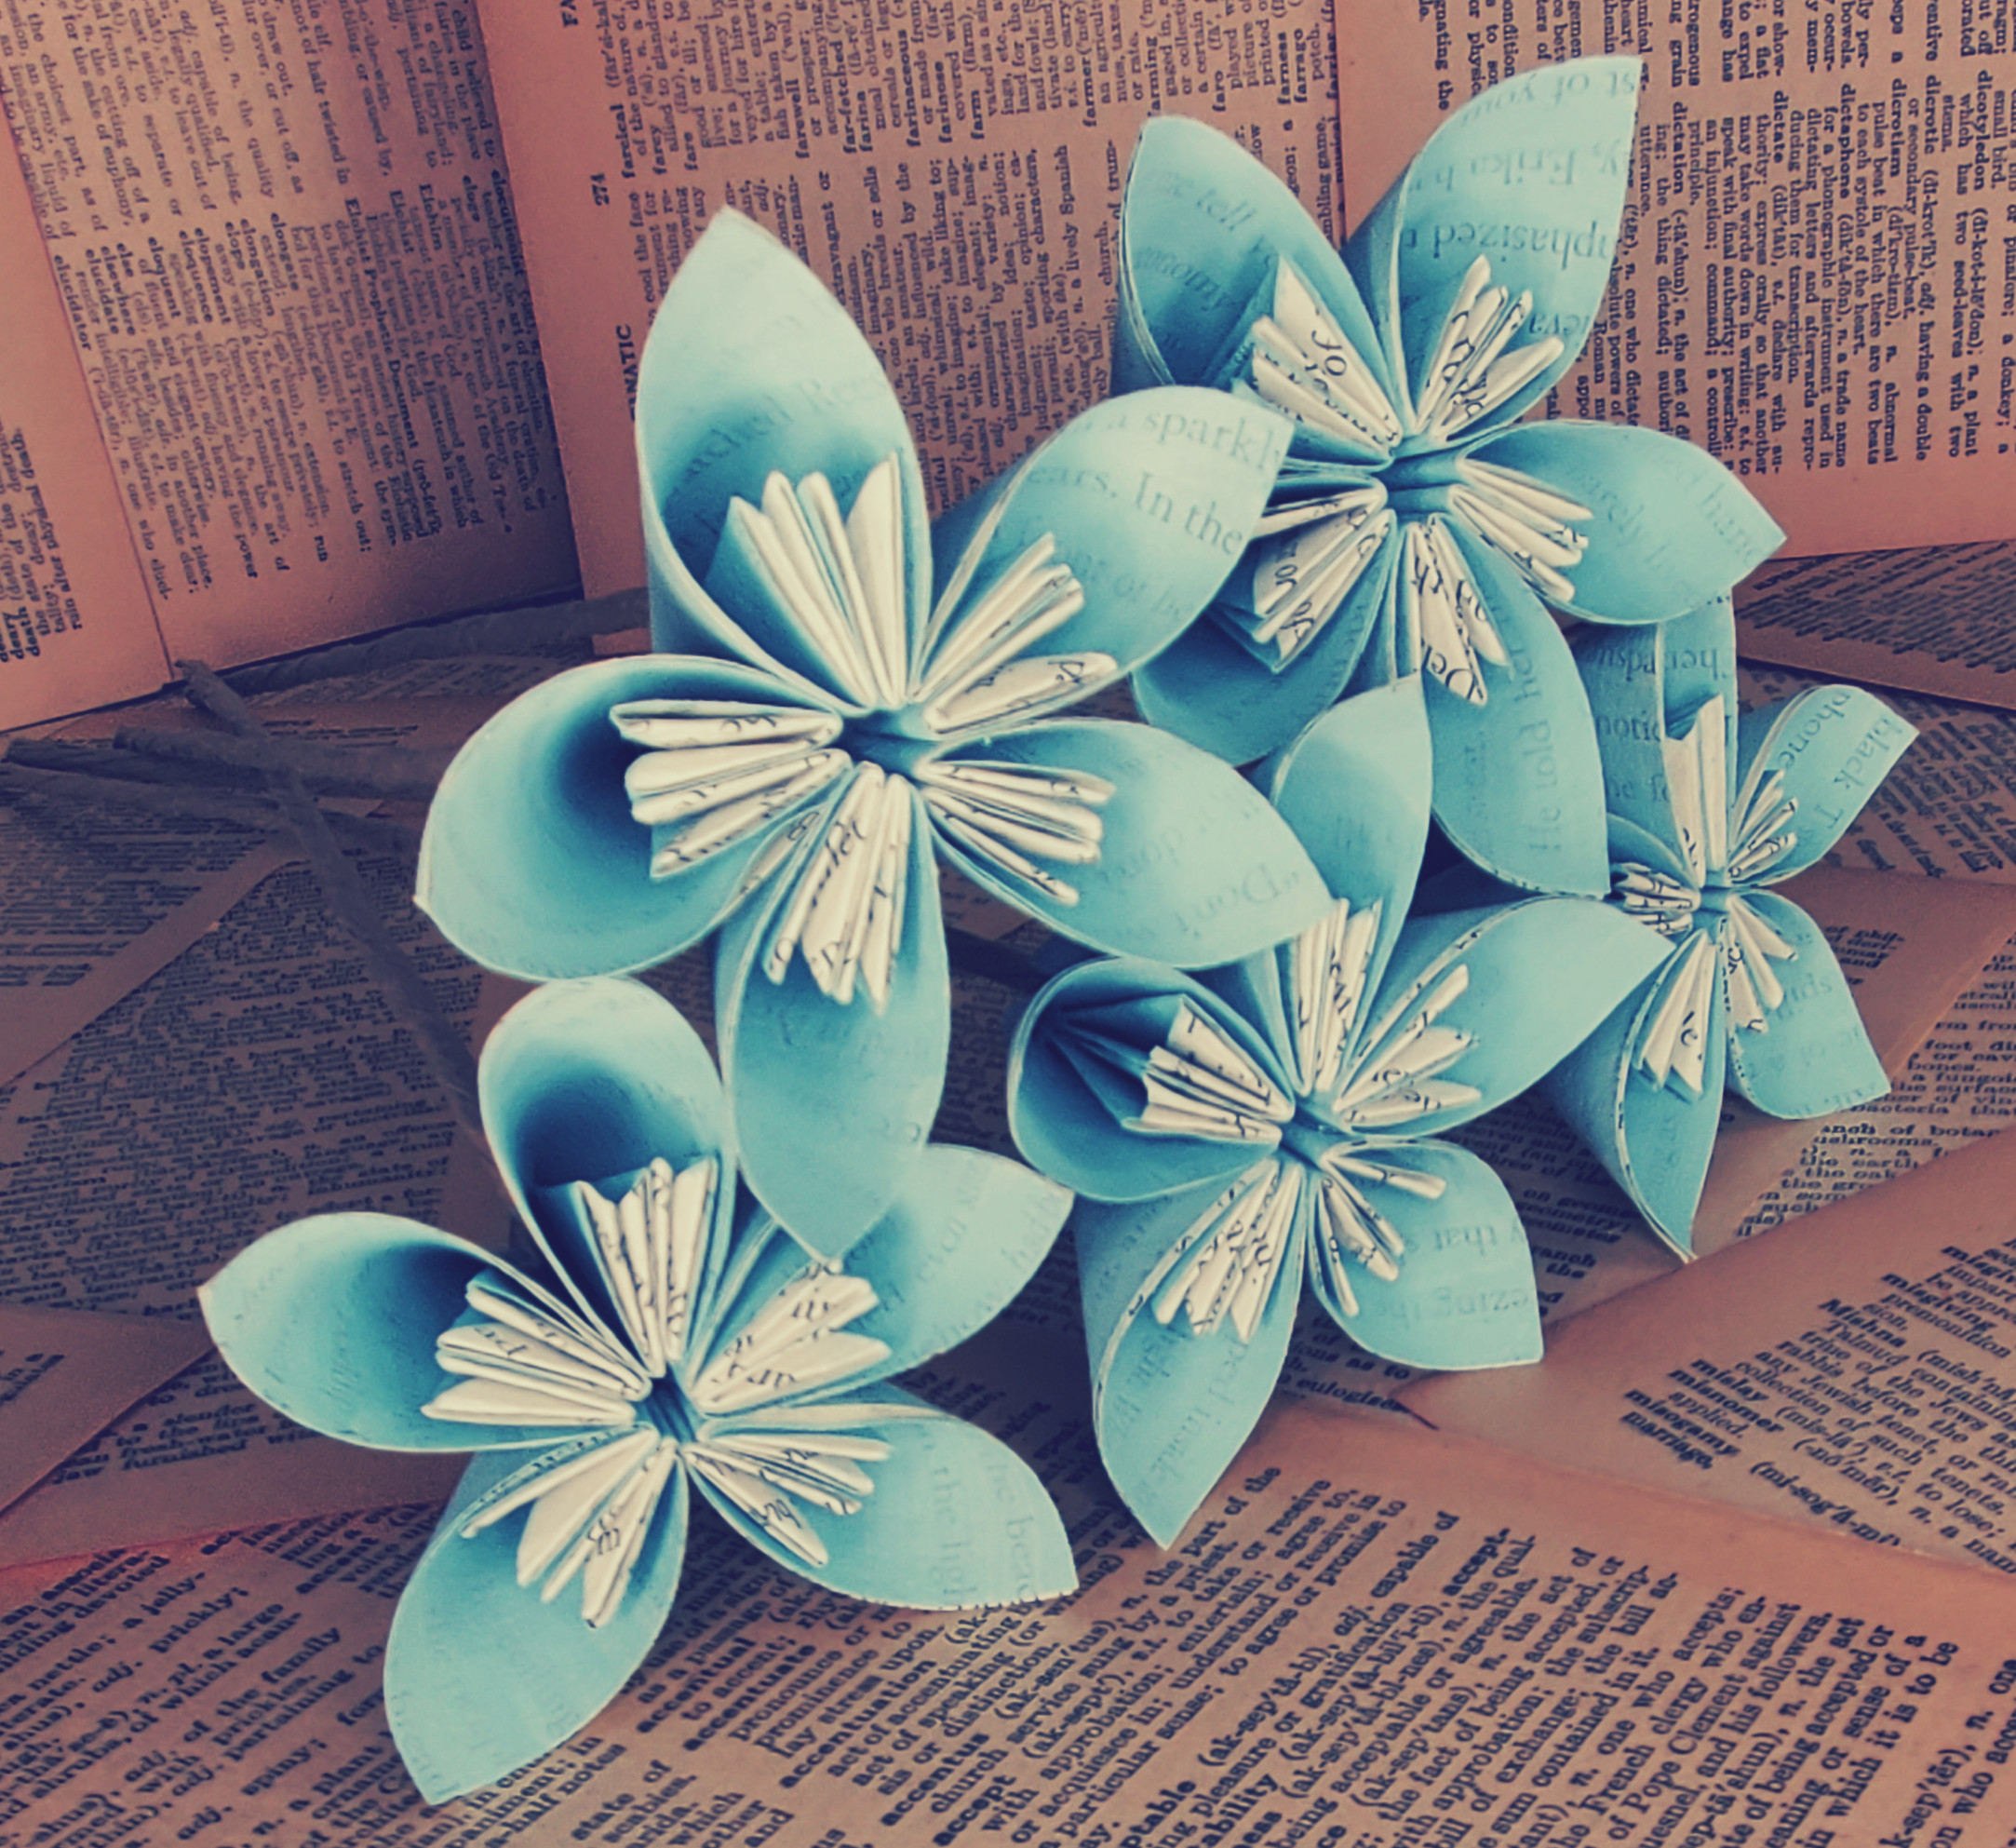 five kusudama flowers in a light teal stacked on each other